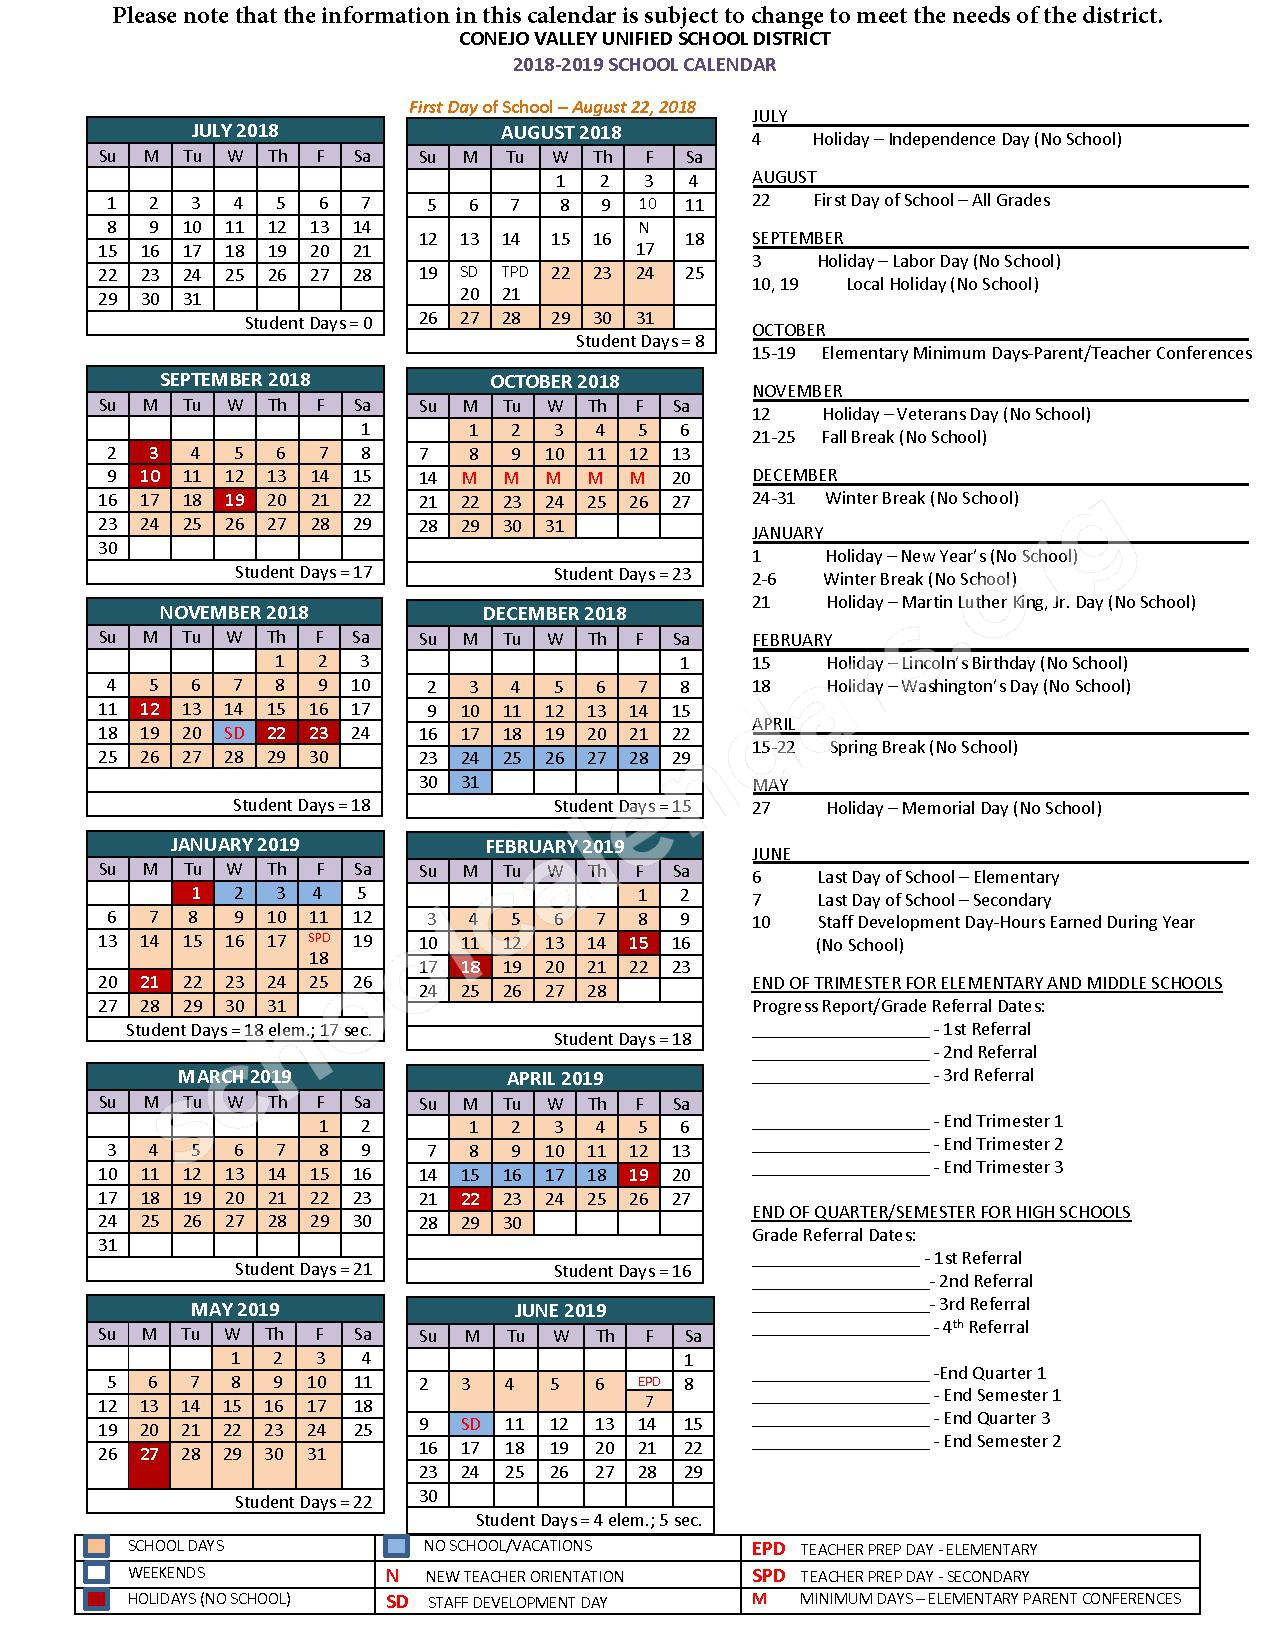 2018 - 2019 School Calendar – Conejo Valley Unified School District – page 1